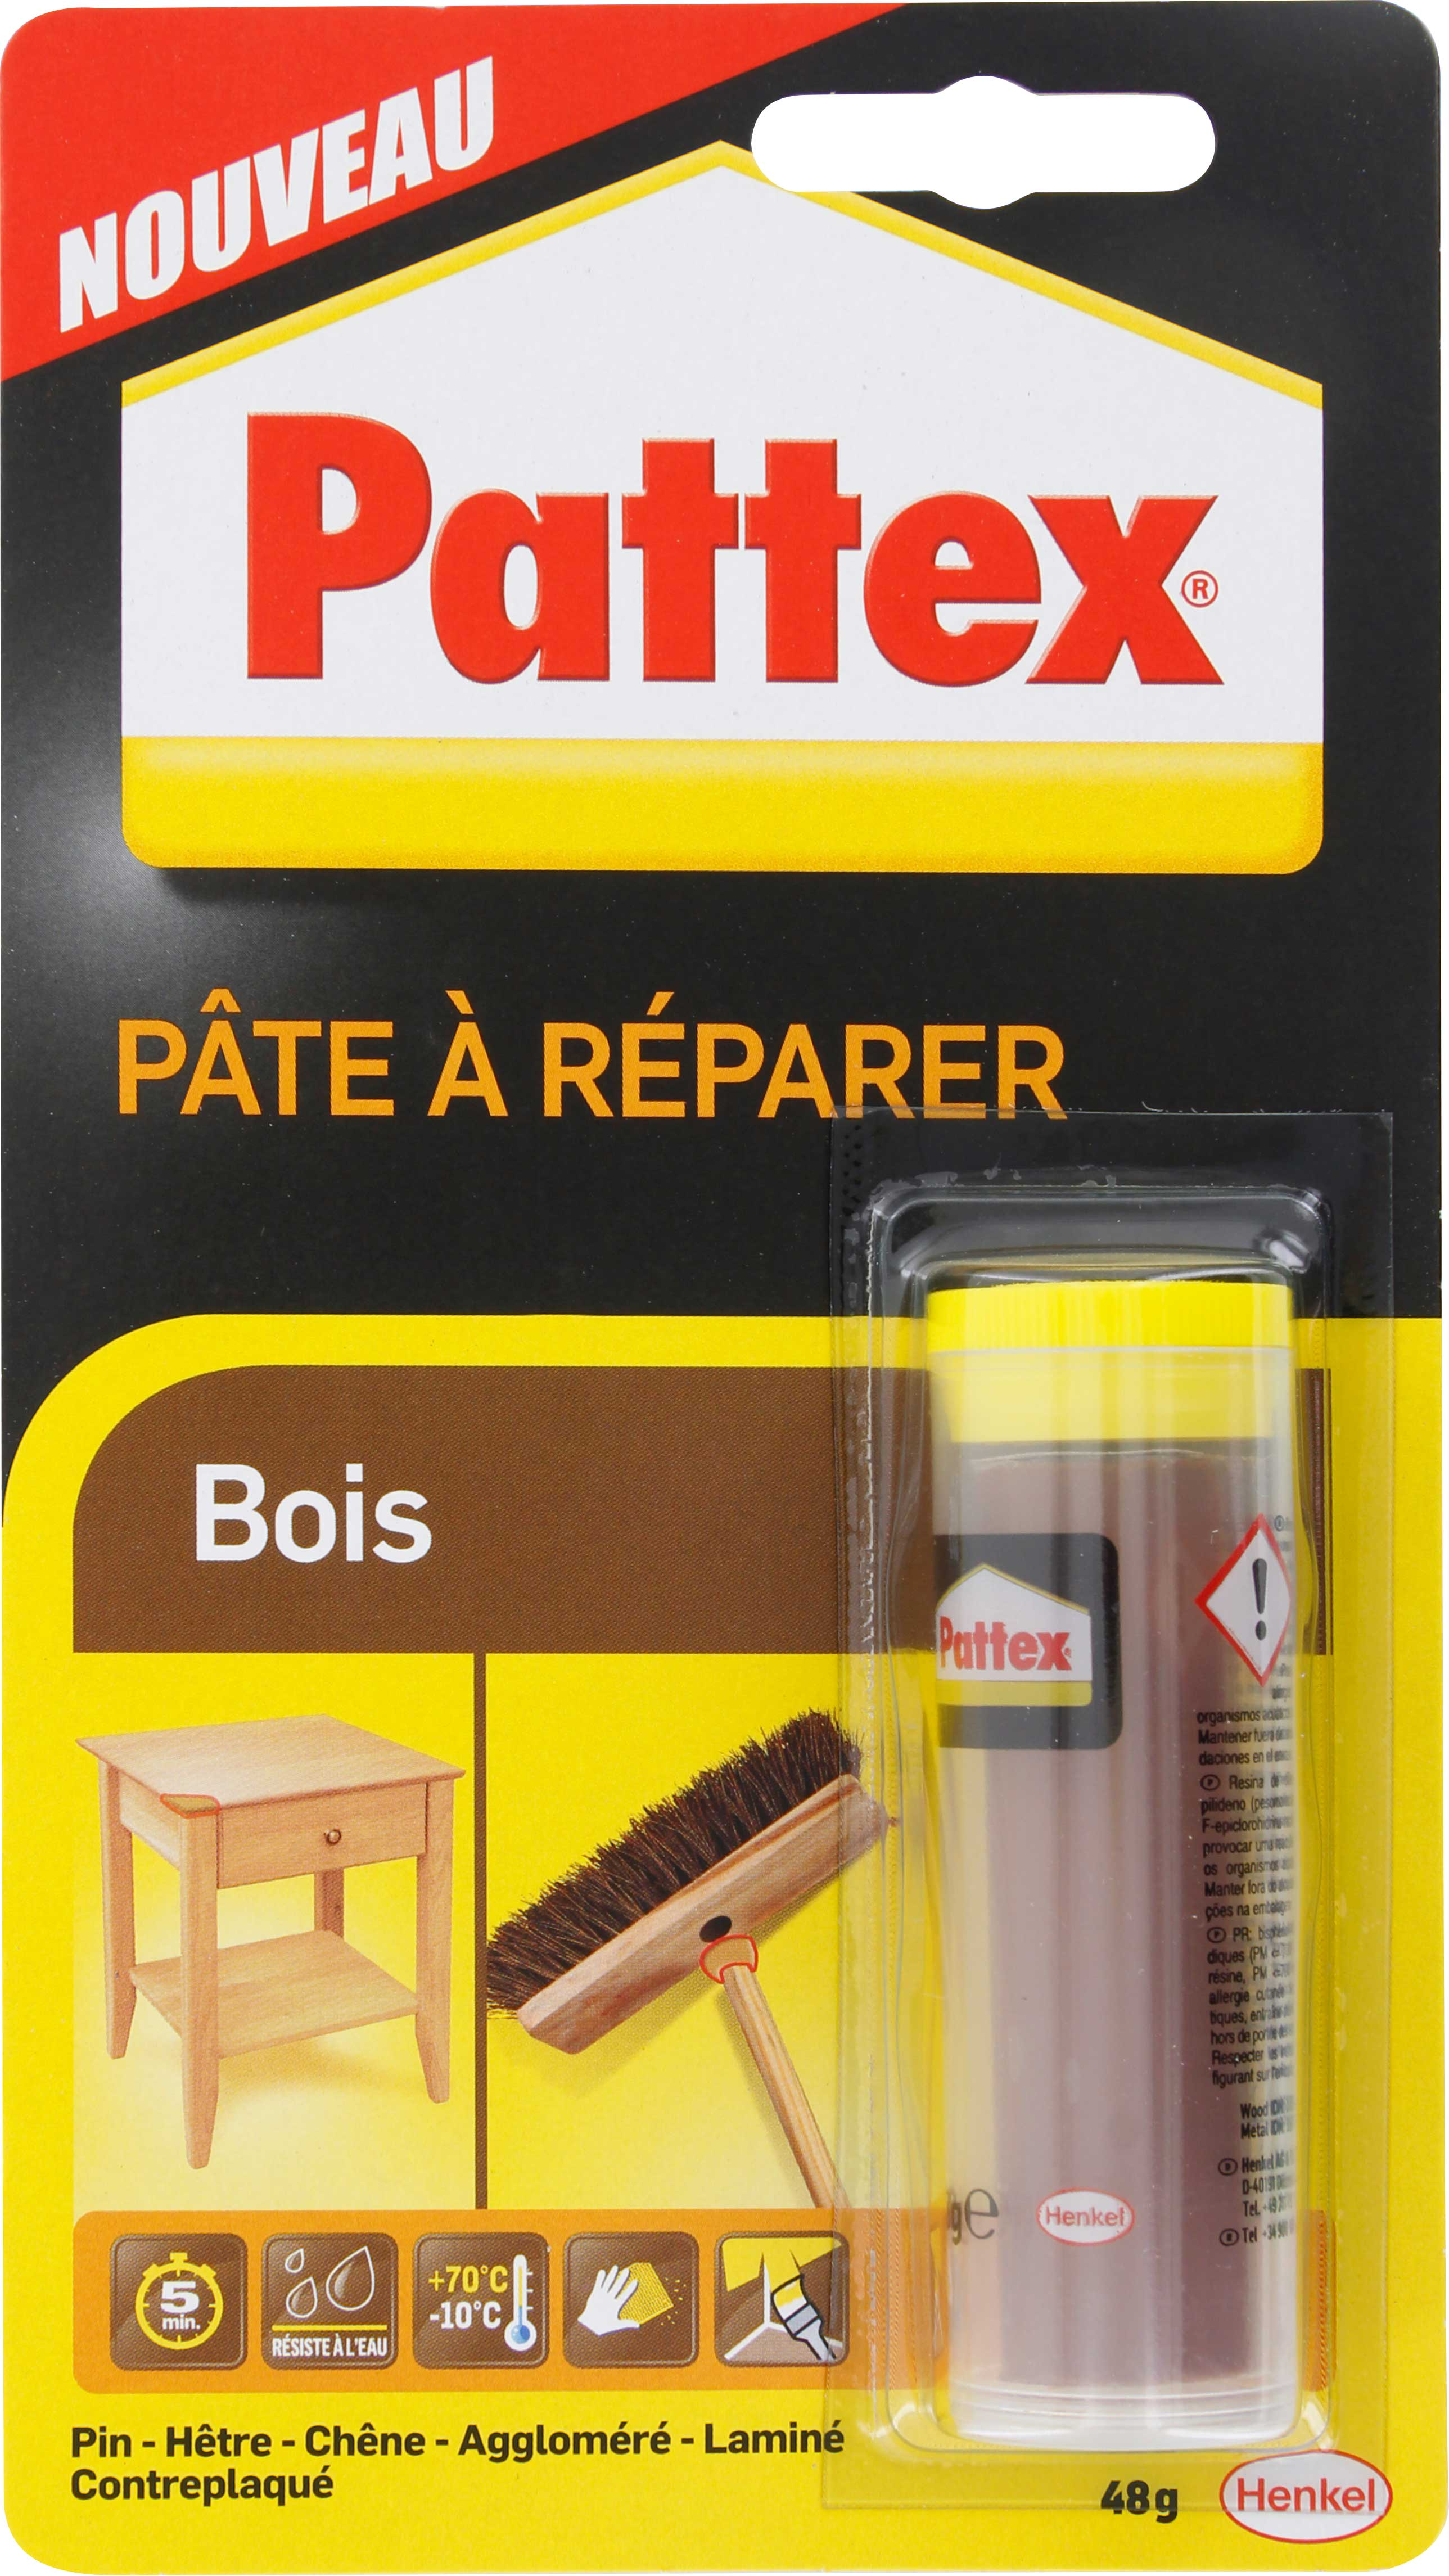 Repair Express bois Pattex